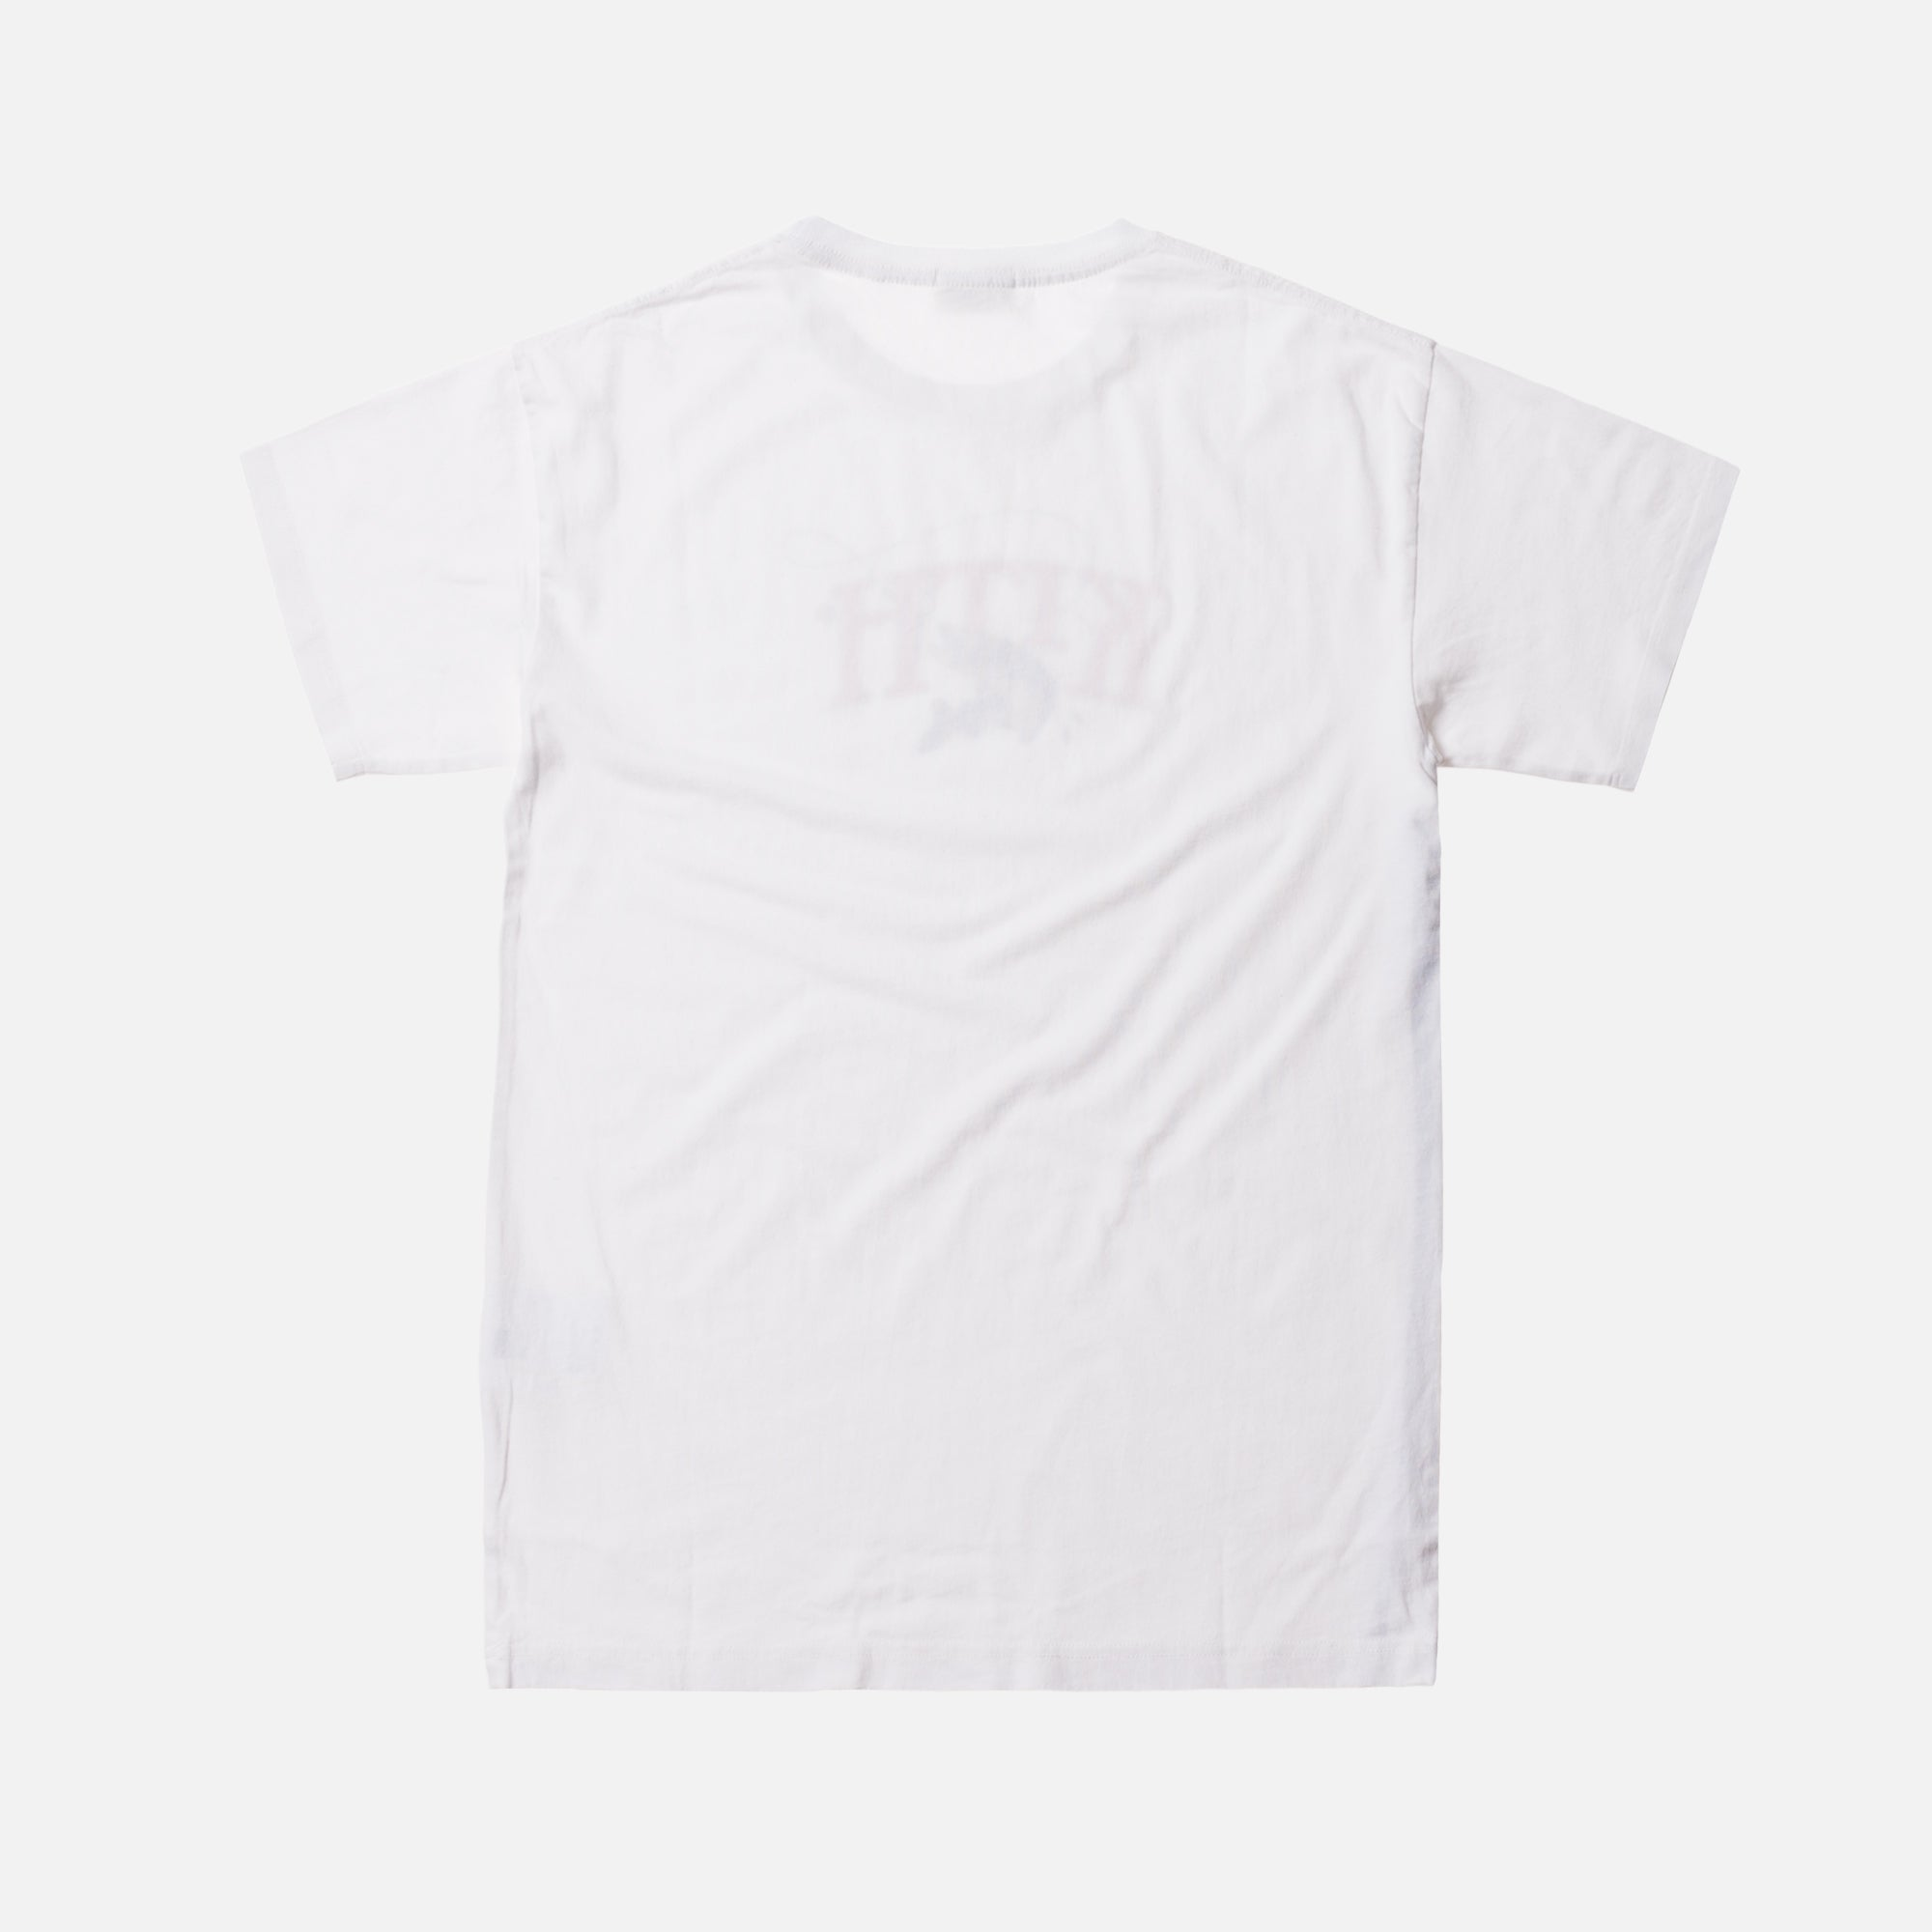 Kith Tight Lines Tee - White